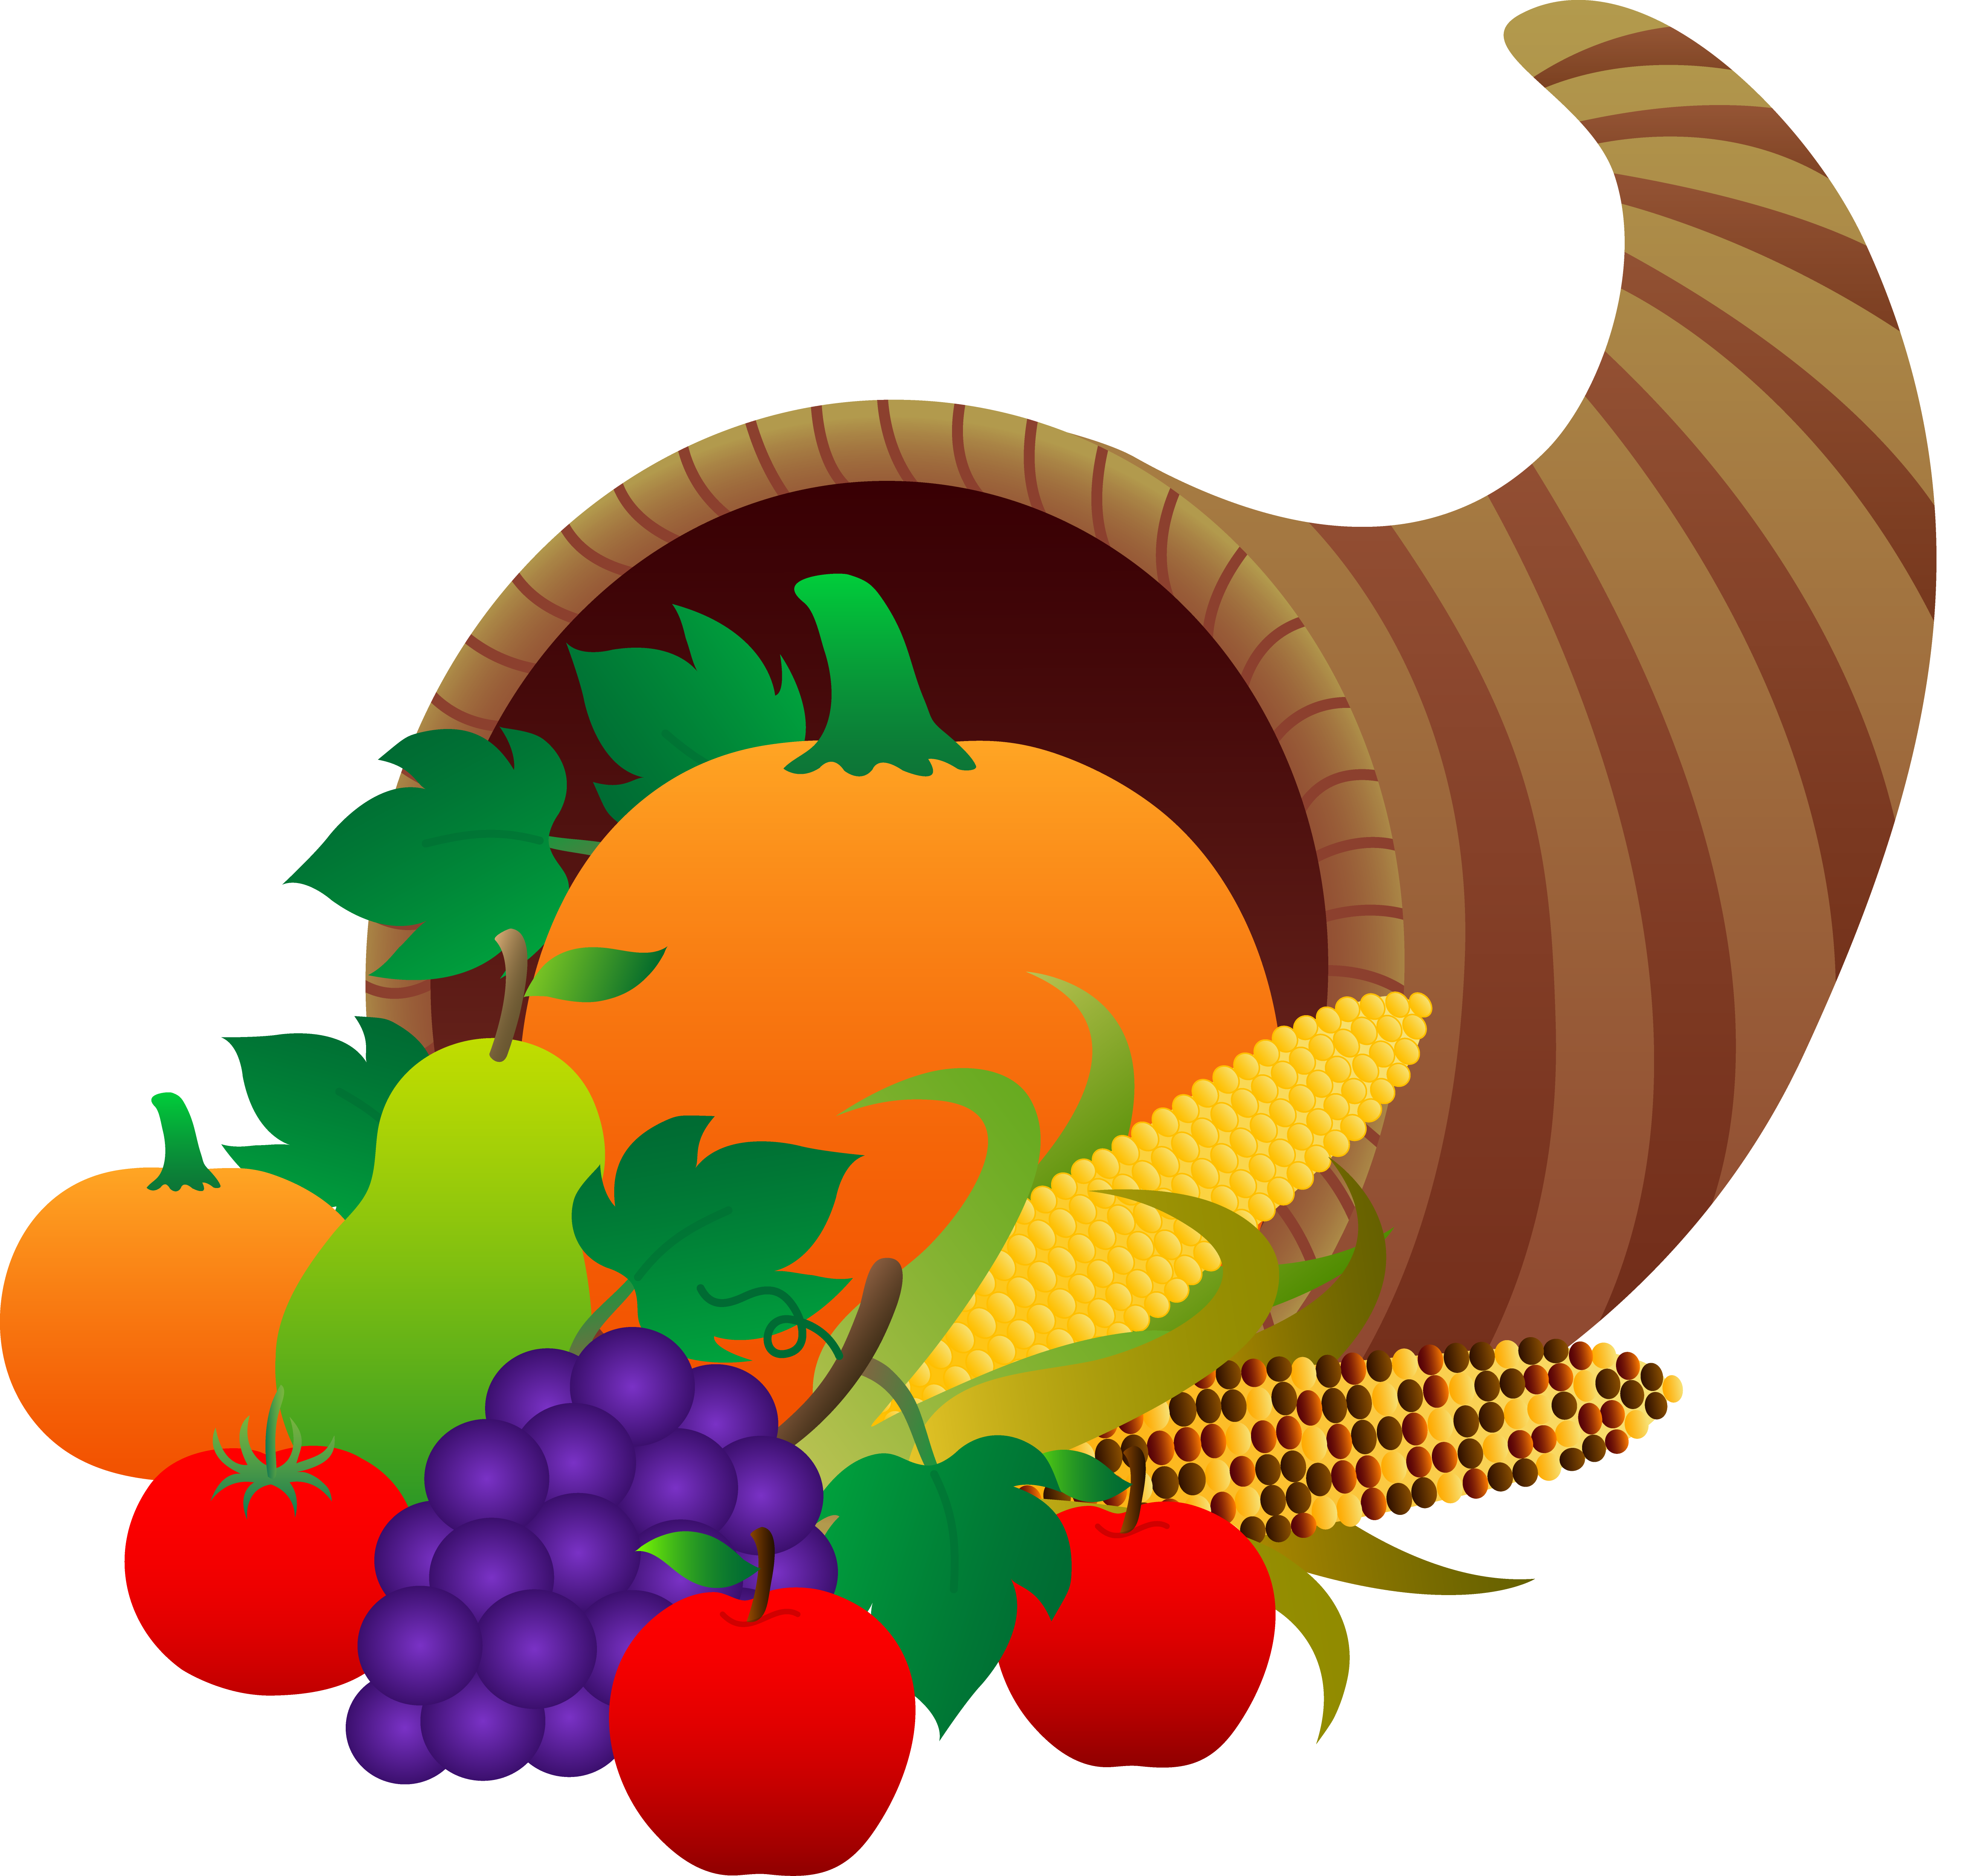 Thanksgiving Cornucopia - Fre - Thanksgiving Food Clipart